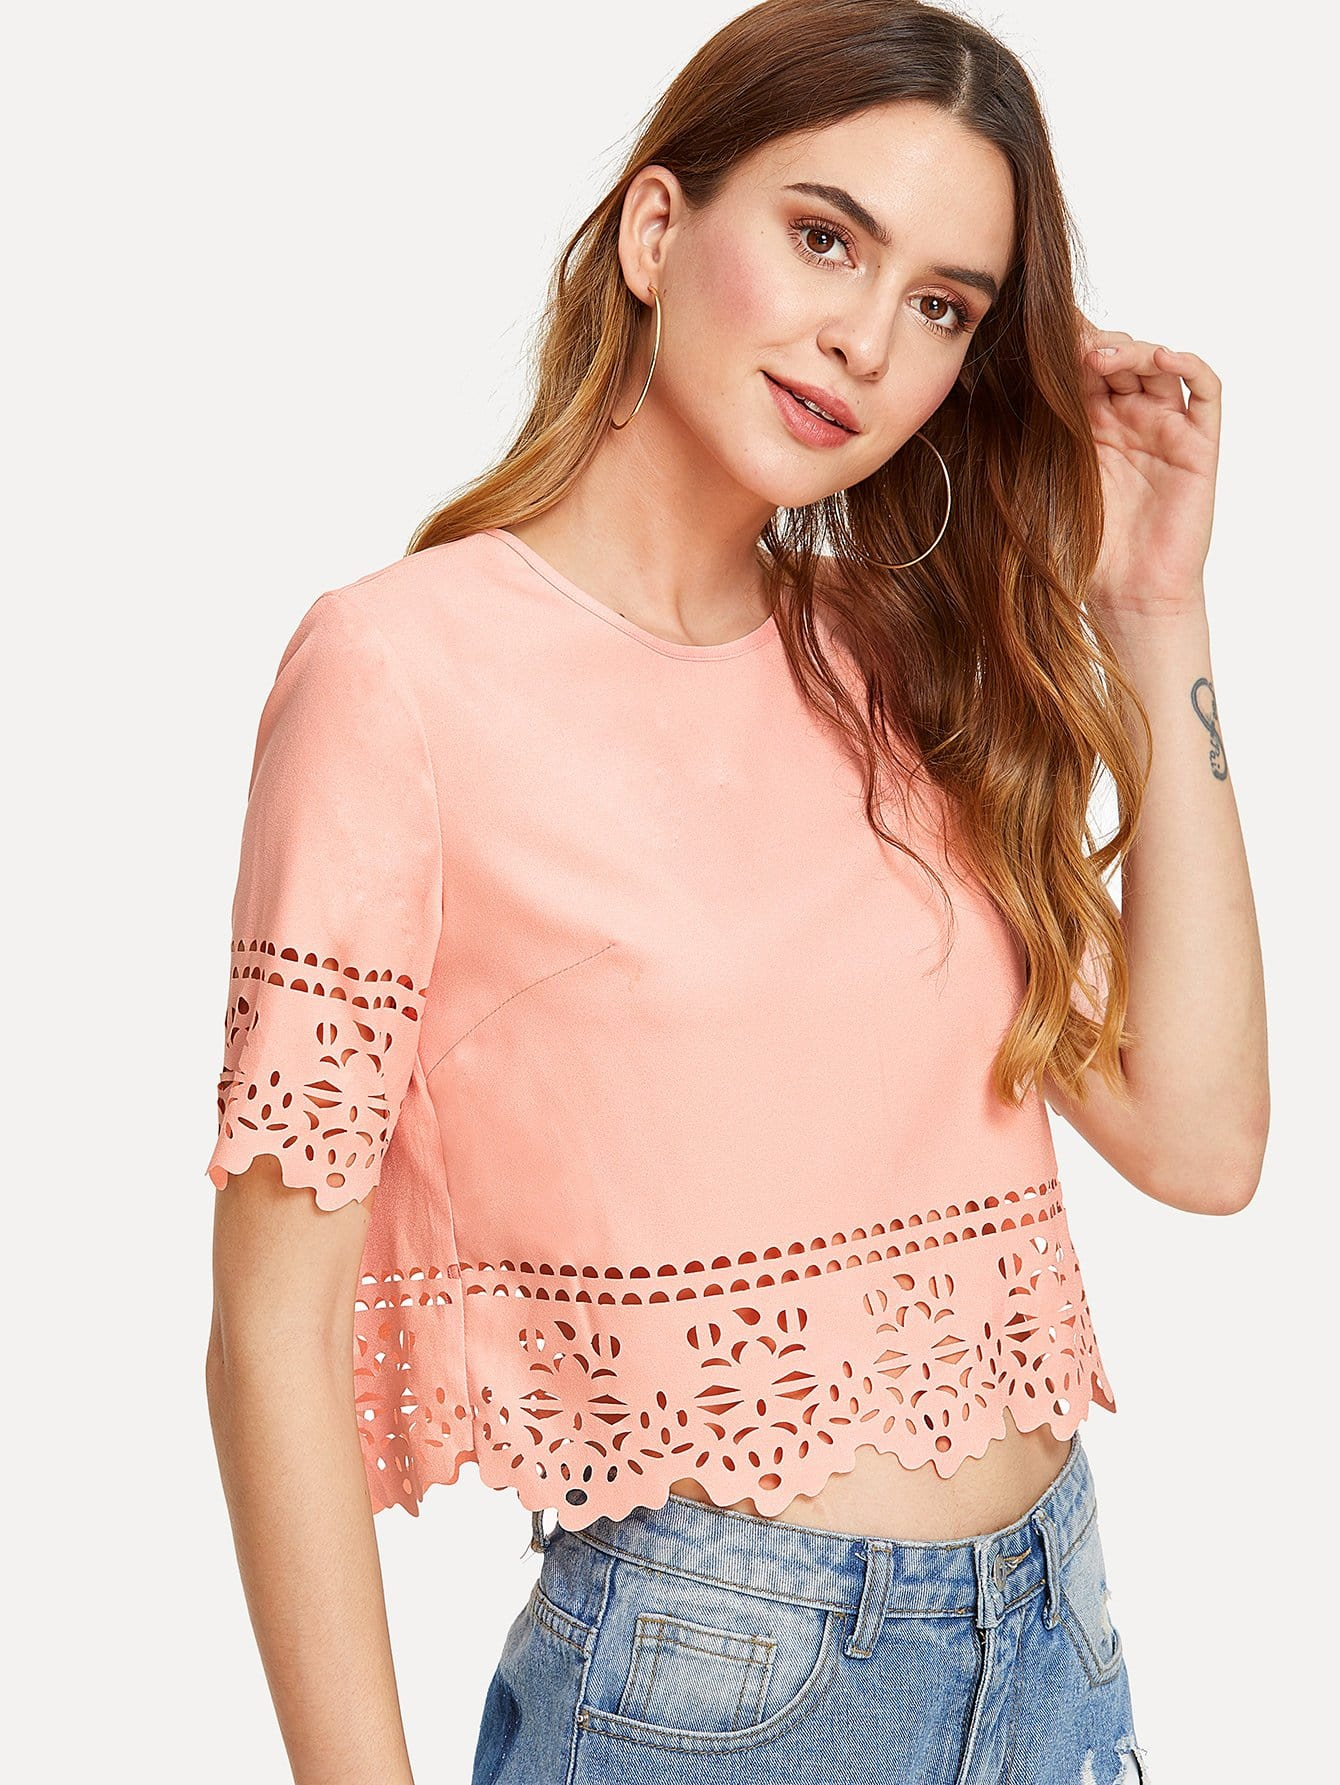 Keyhole Back Laser Cut Crop Top cut and sew keyhole back top